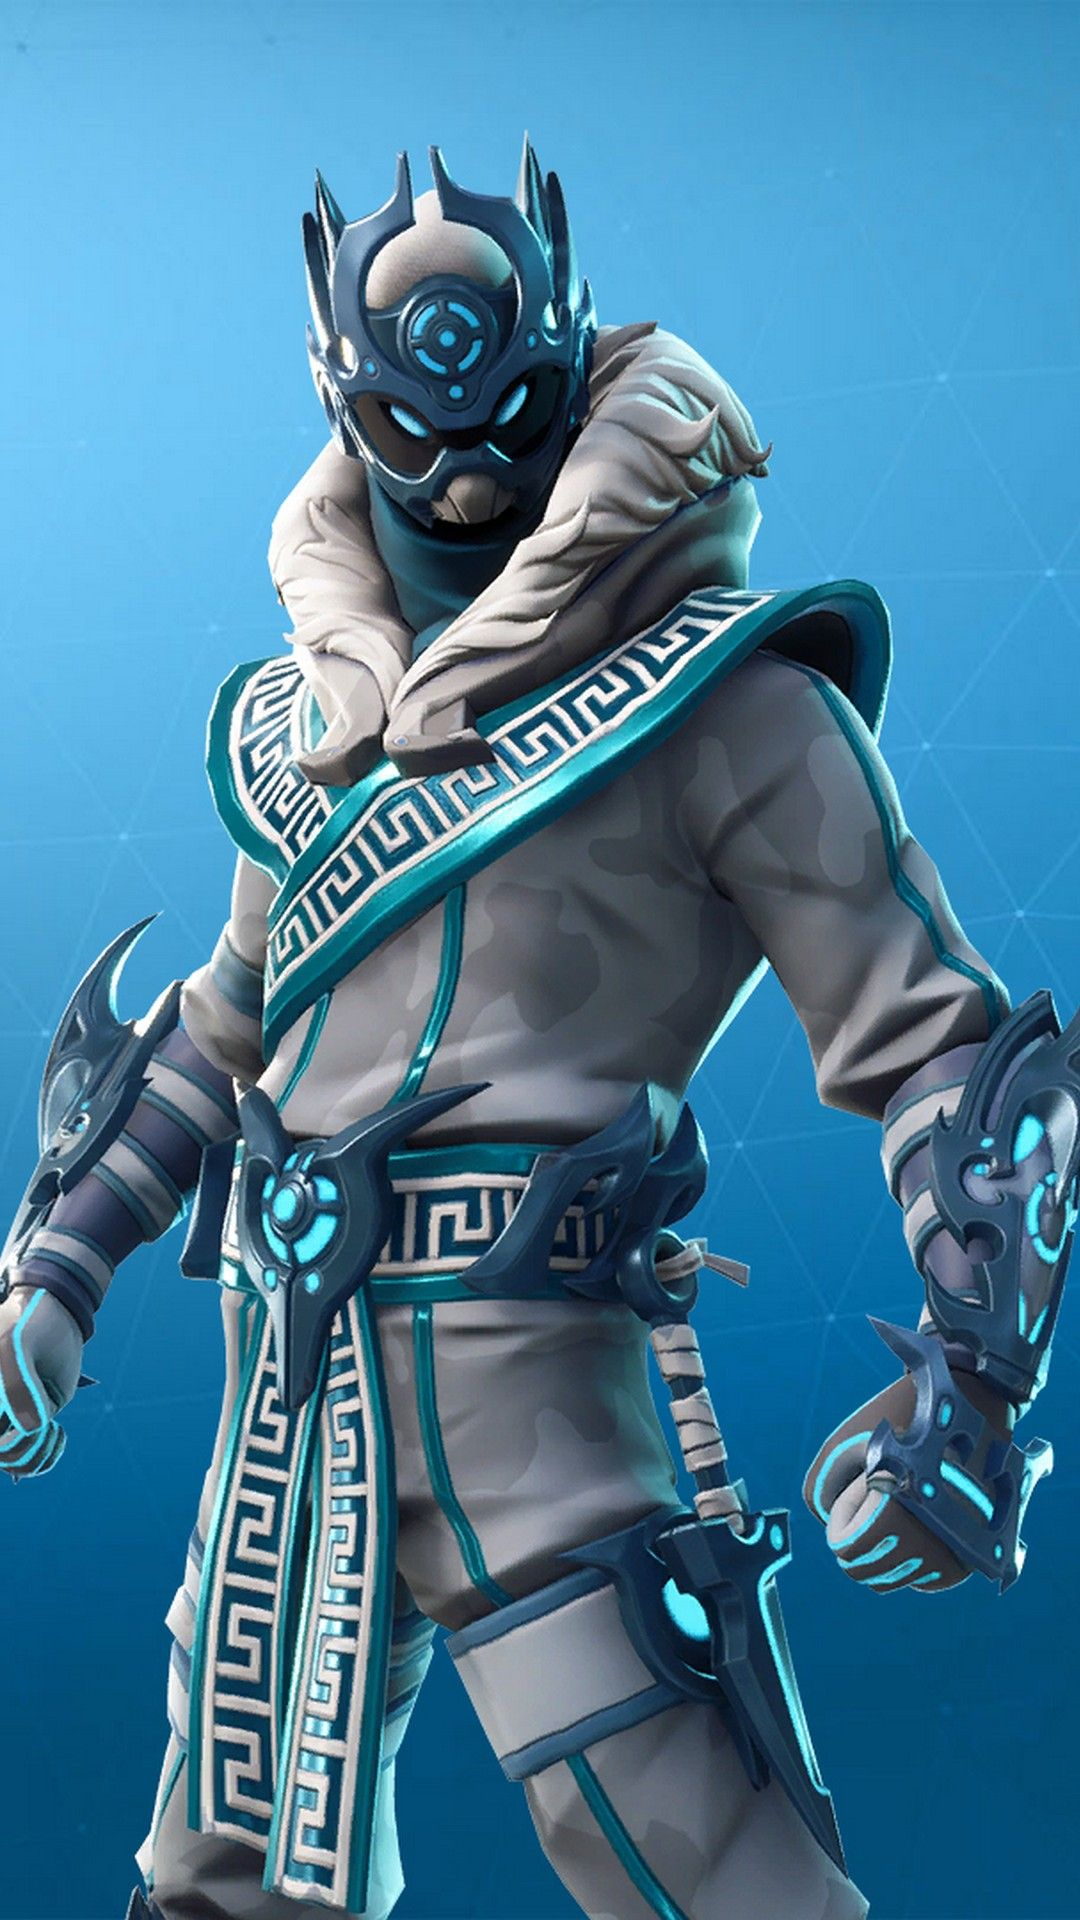 iPhone Wallpaper HD Fortnite Best iphone wallpapers